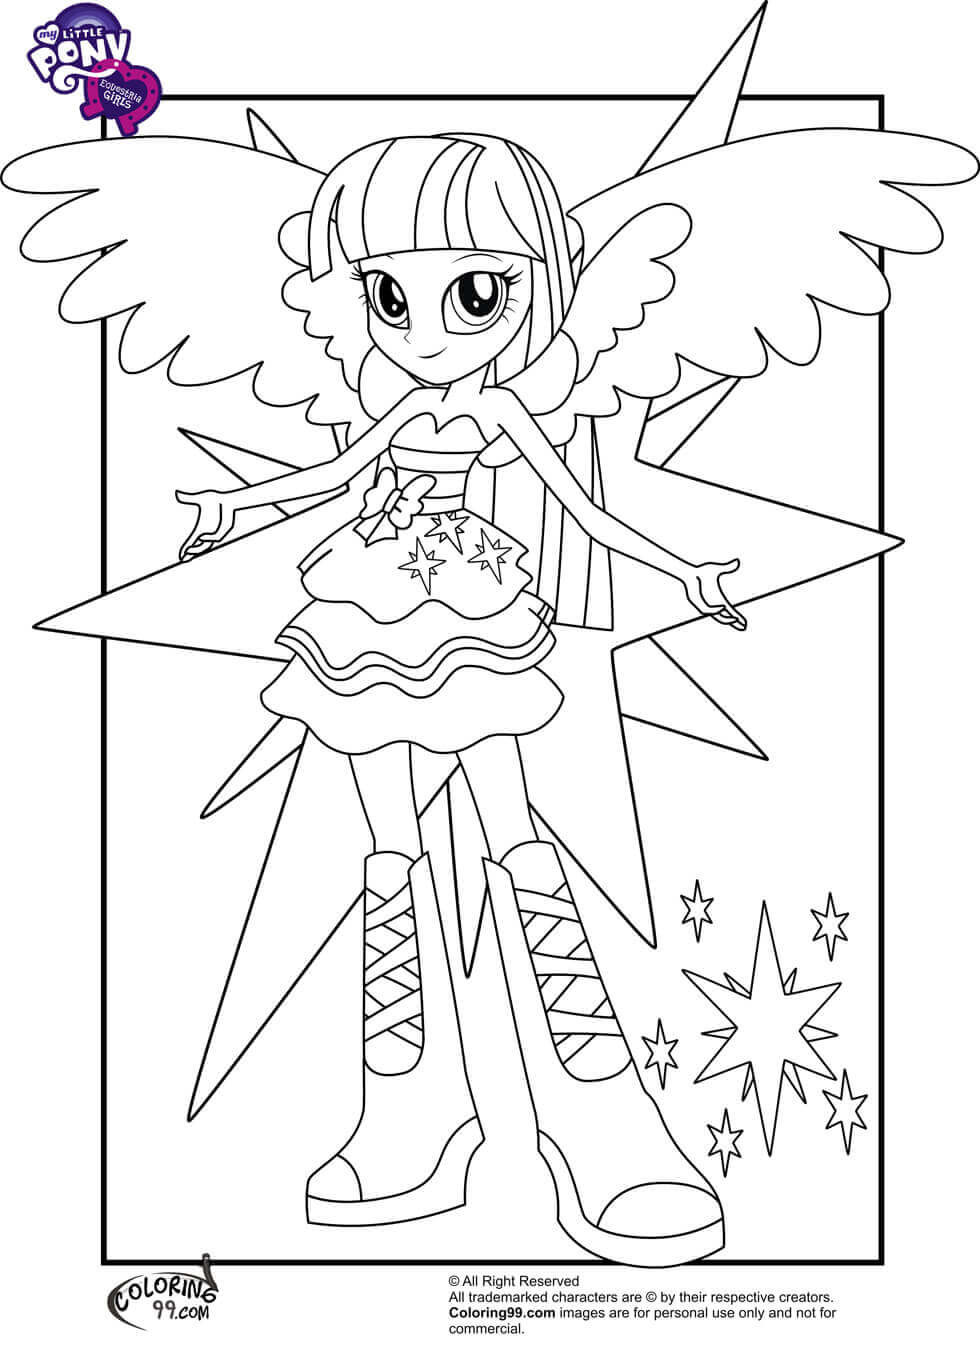 Coloring Sheets For Kids Equestria Girls  15 Printable My Little Pony Equestria Girls Coloring Pages